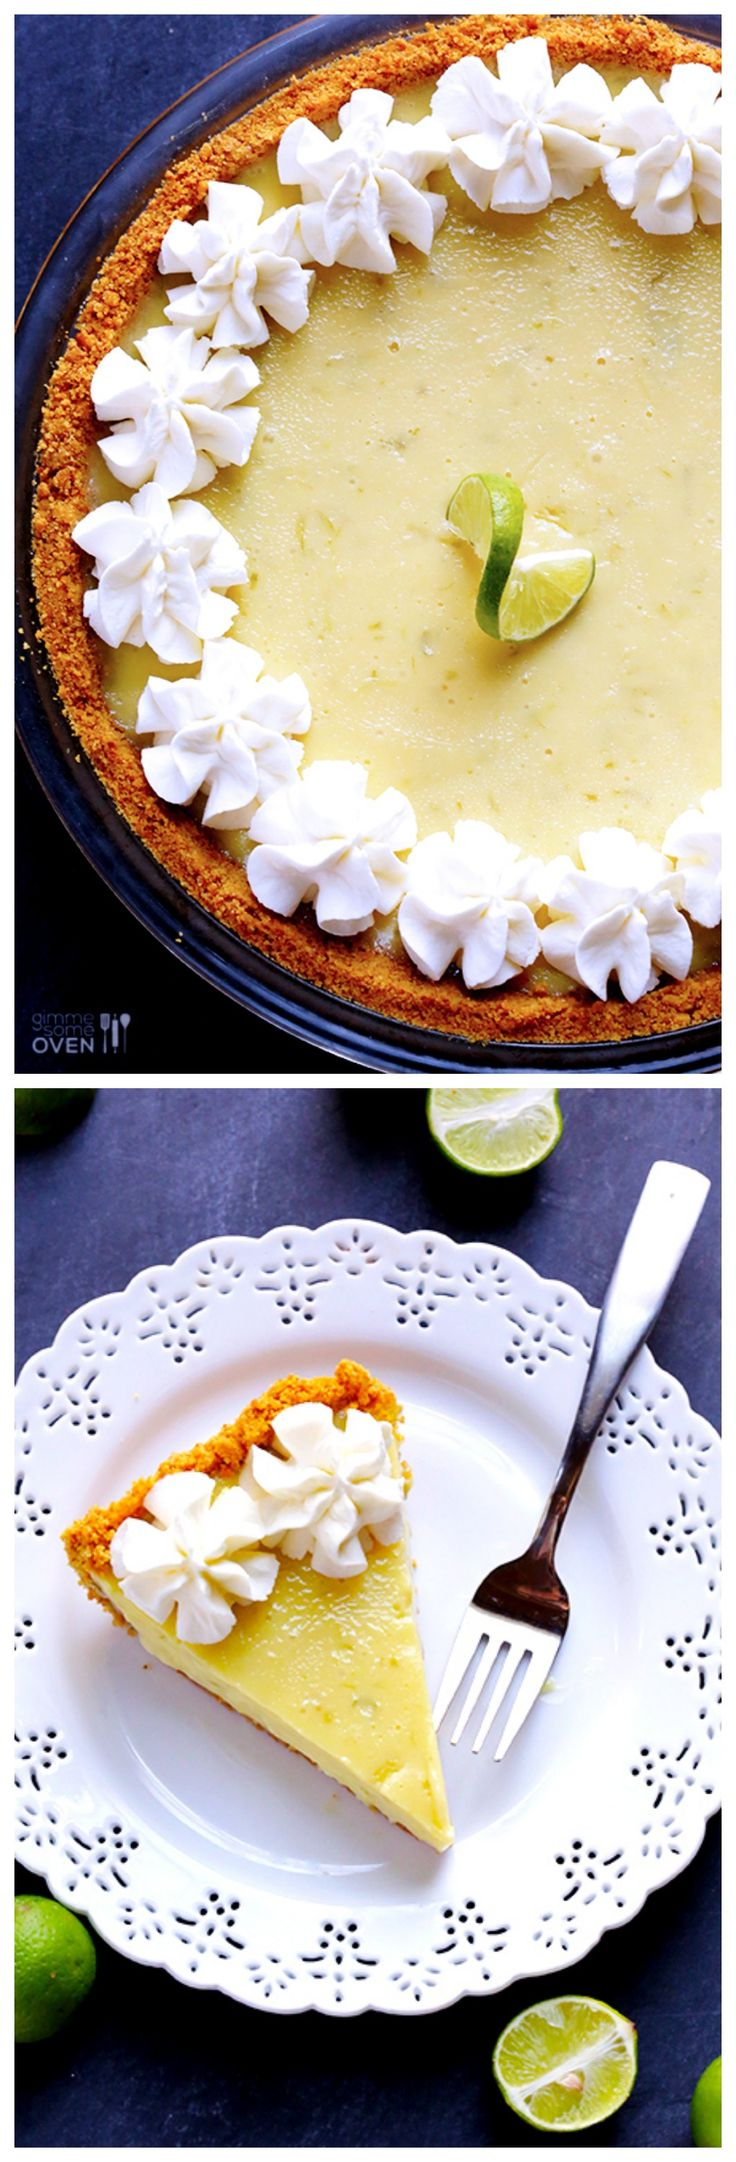 The BEST Key Lime Pie!  Made with a graham cracker crust and a simple 3-ingredient filling.  So fresh and tasty! gimmesomeoven.com #dessert